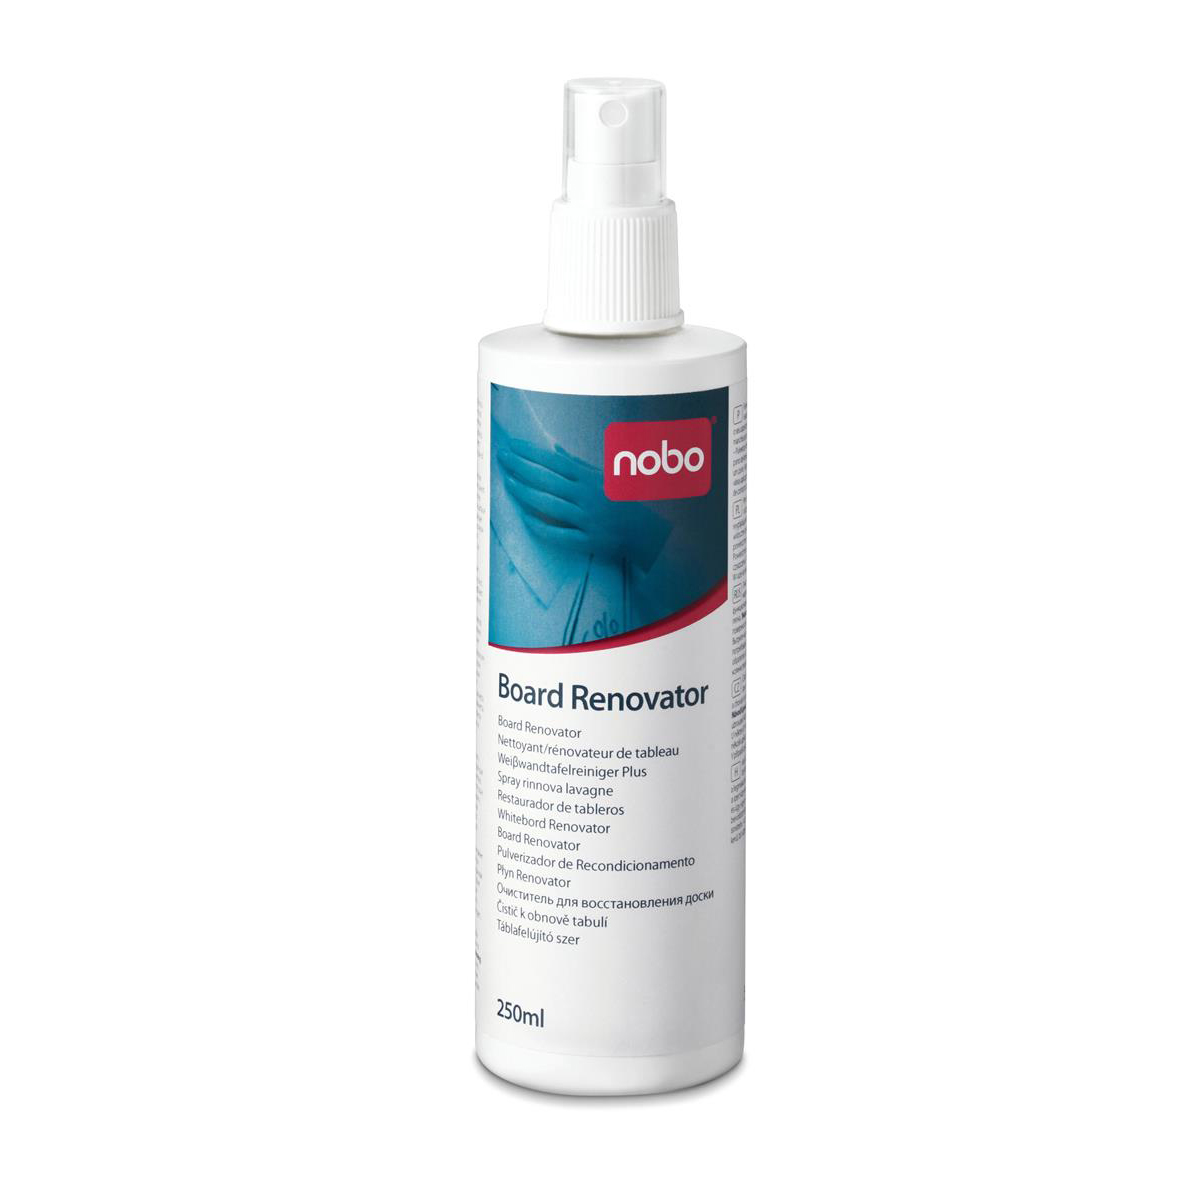 Nobo Whiteboard Renovator Pump Spray 250ml Ref 1901436